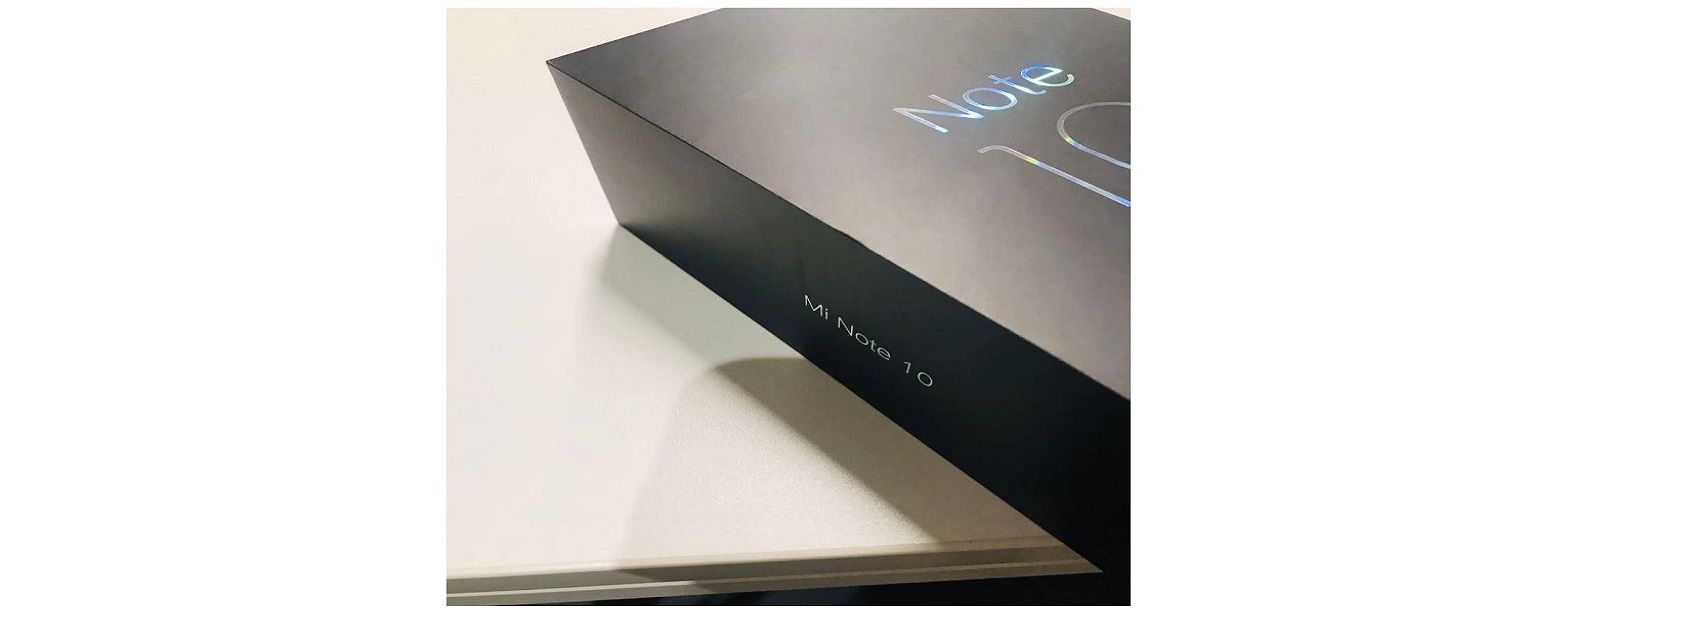 Xiaomi Mi Note 10 retail box surfaces online, launch seems imminent